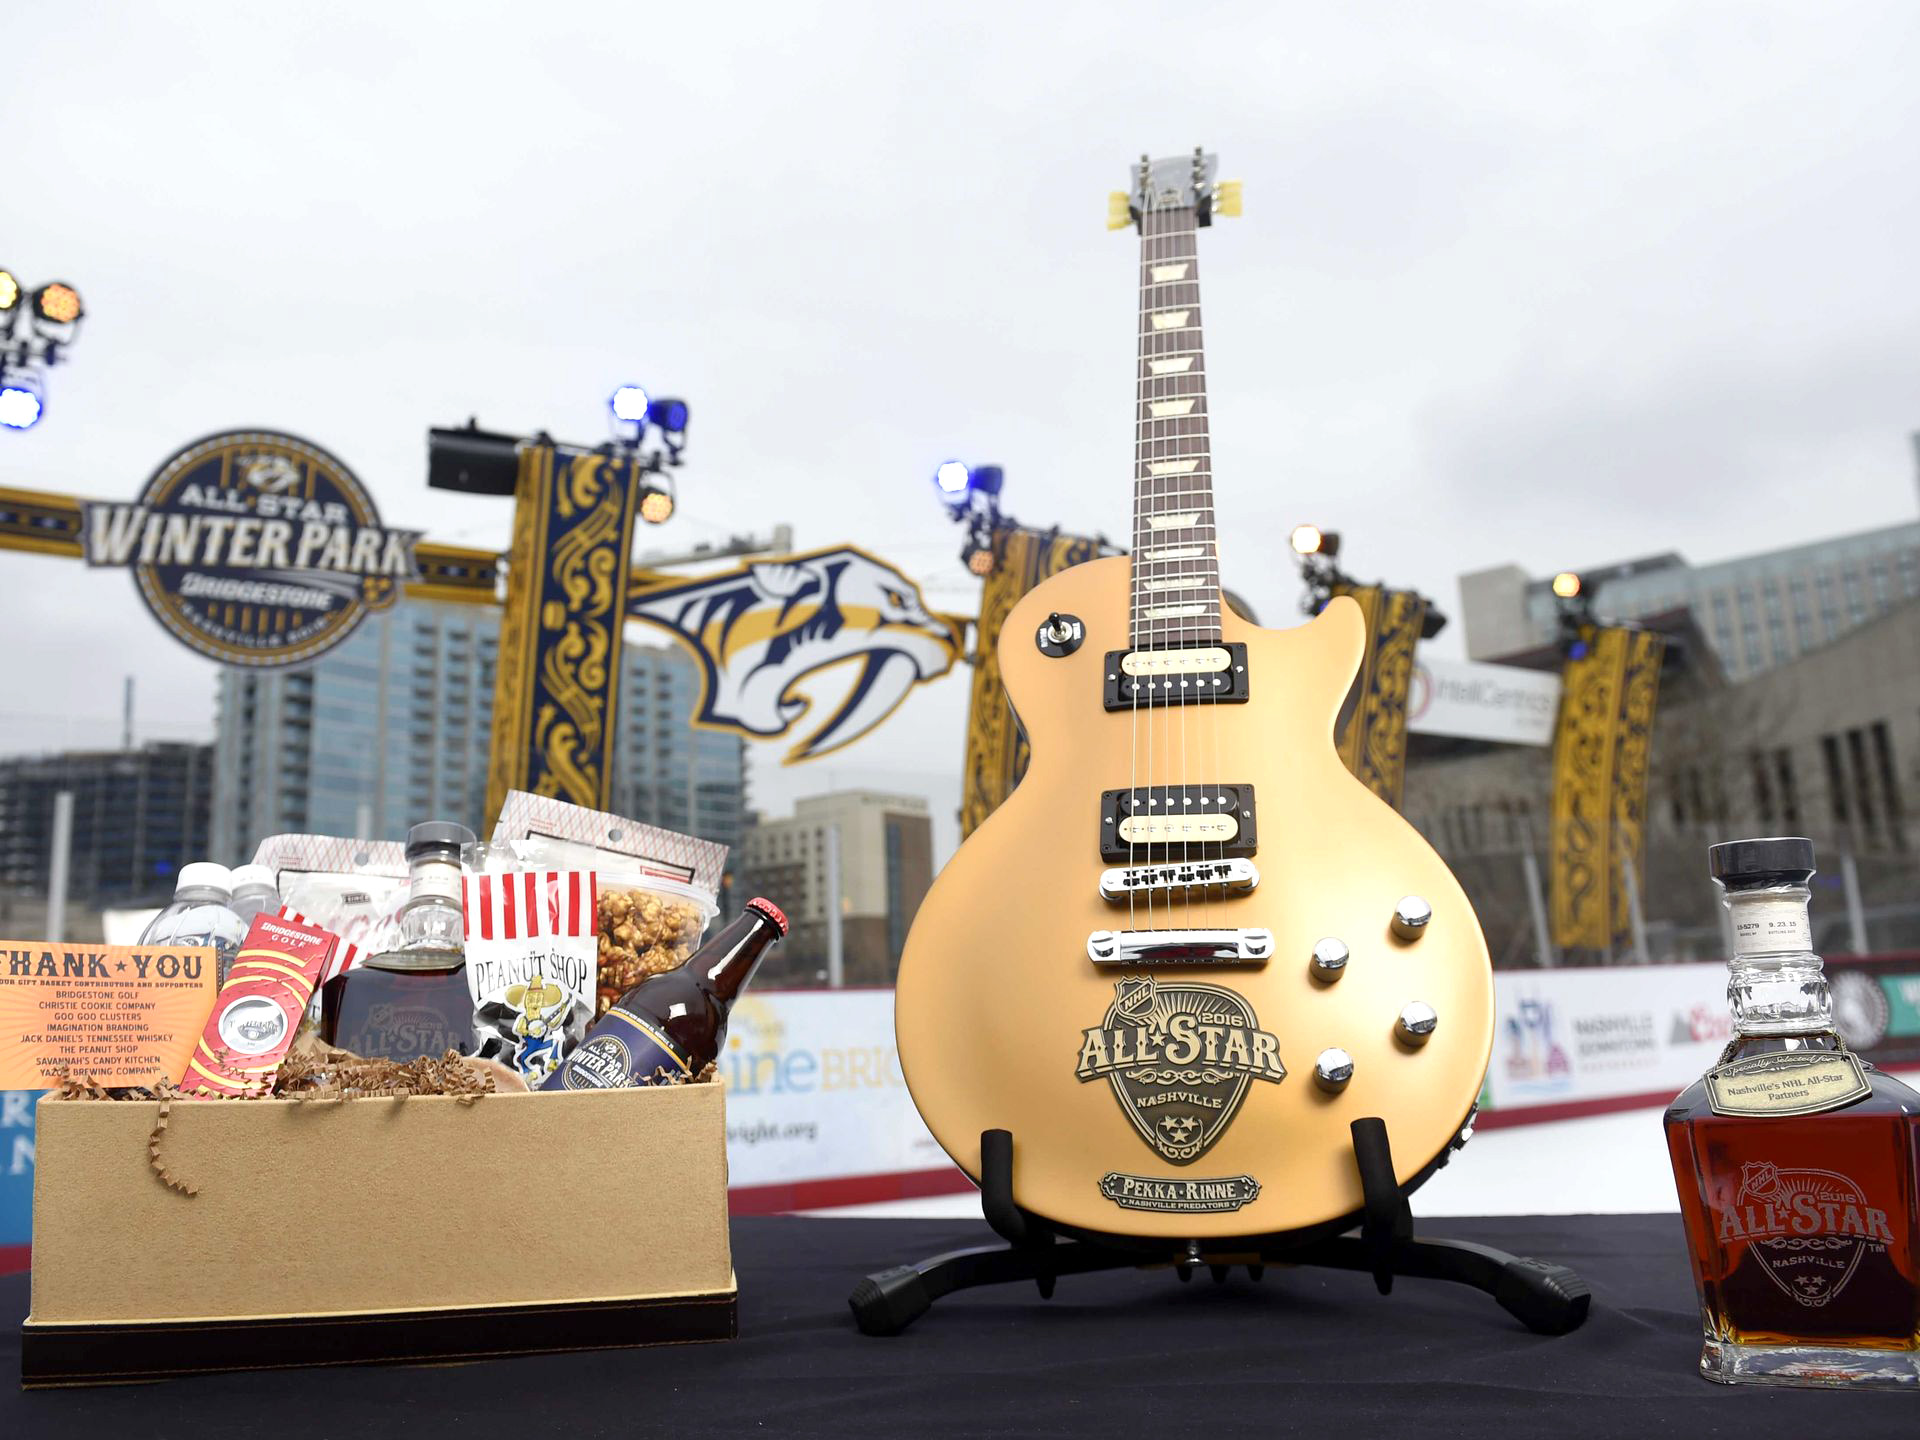 Every All-Star player received a gift bundle including a custom Gibson Les Paul guitar and a branded bottle of Jack Daniels whiskey.